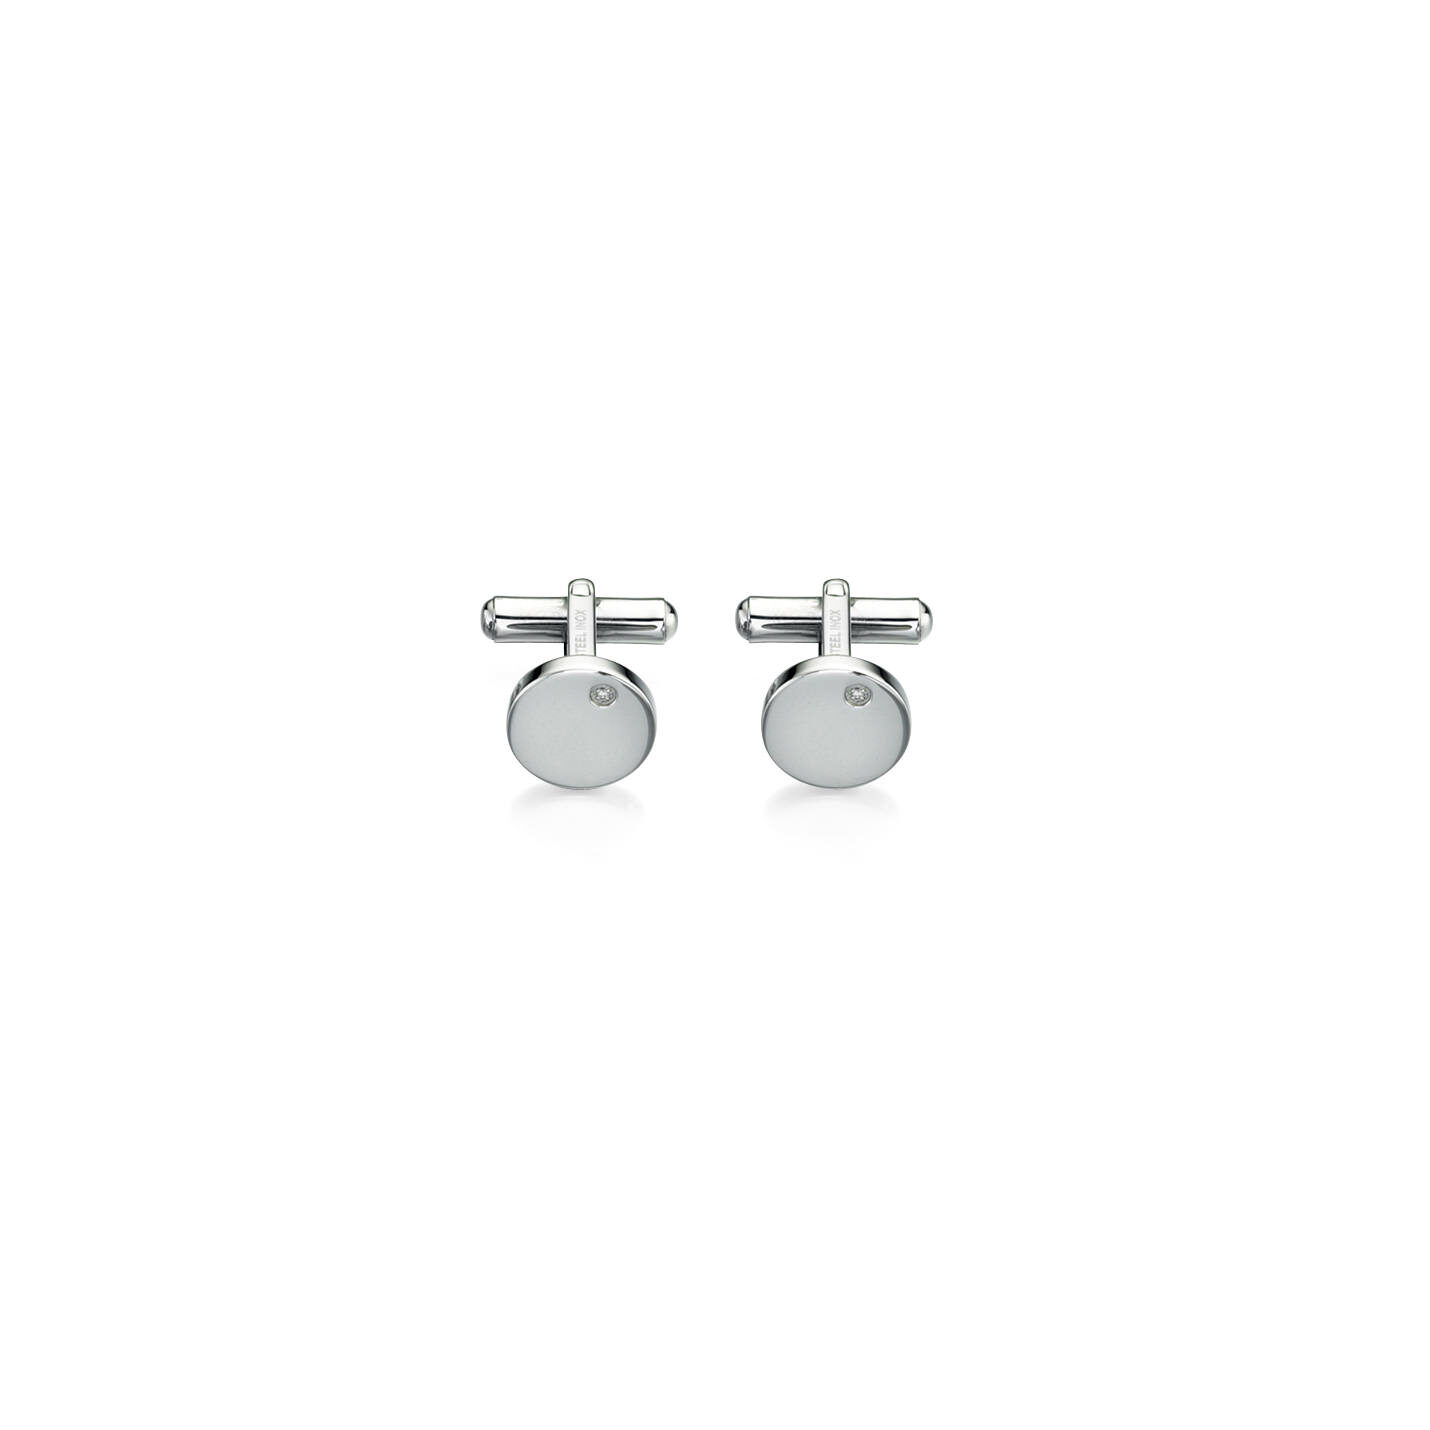 Round Fred Bennett Stainless steel cuff links with CZ dot.